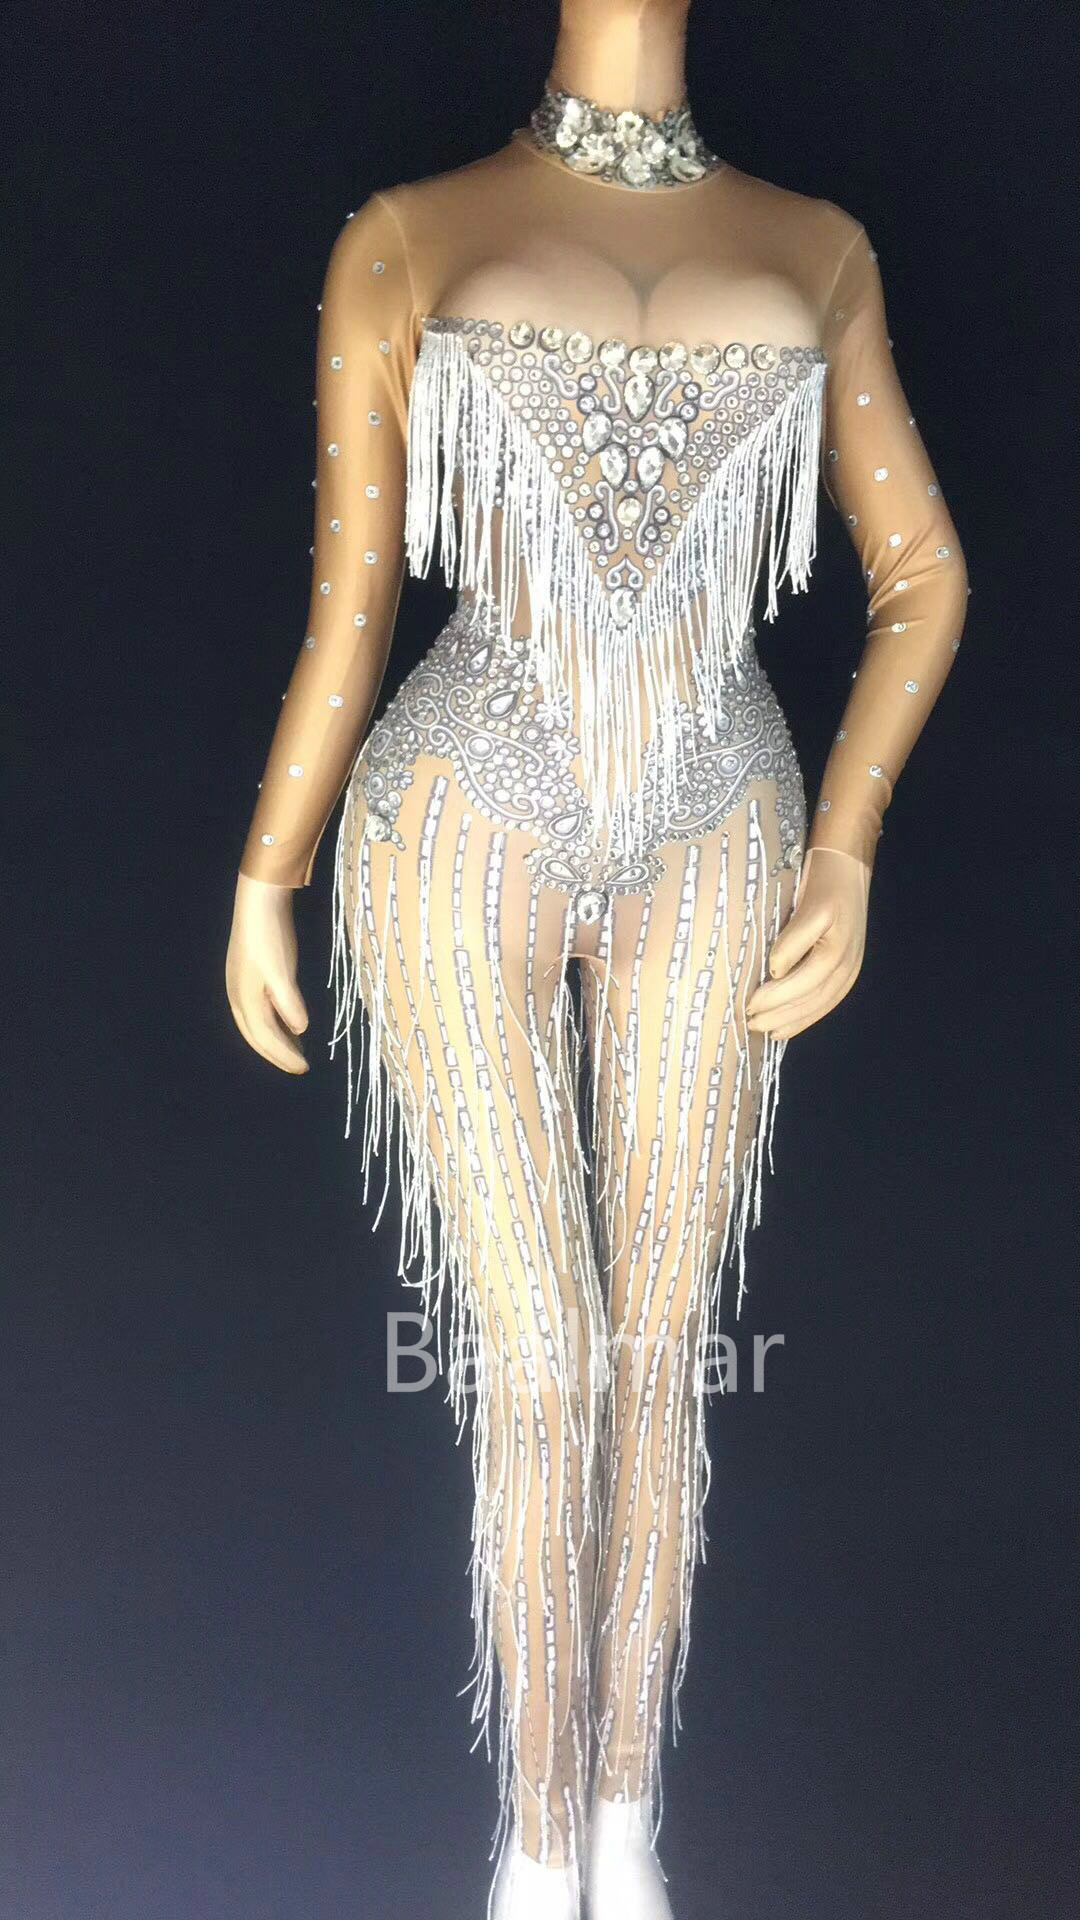 Sparkly Sexy Jumpsuit Women Stage Dance Fringes Birthday Nightclub Female Singer Bodysuit Costume Evening Celebrate Party Outfit